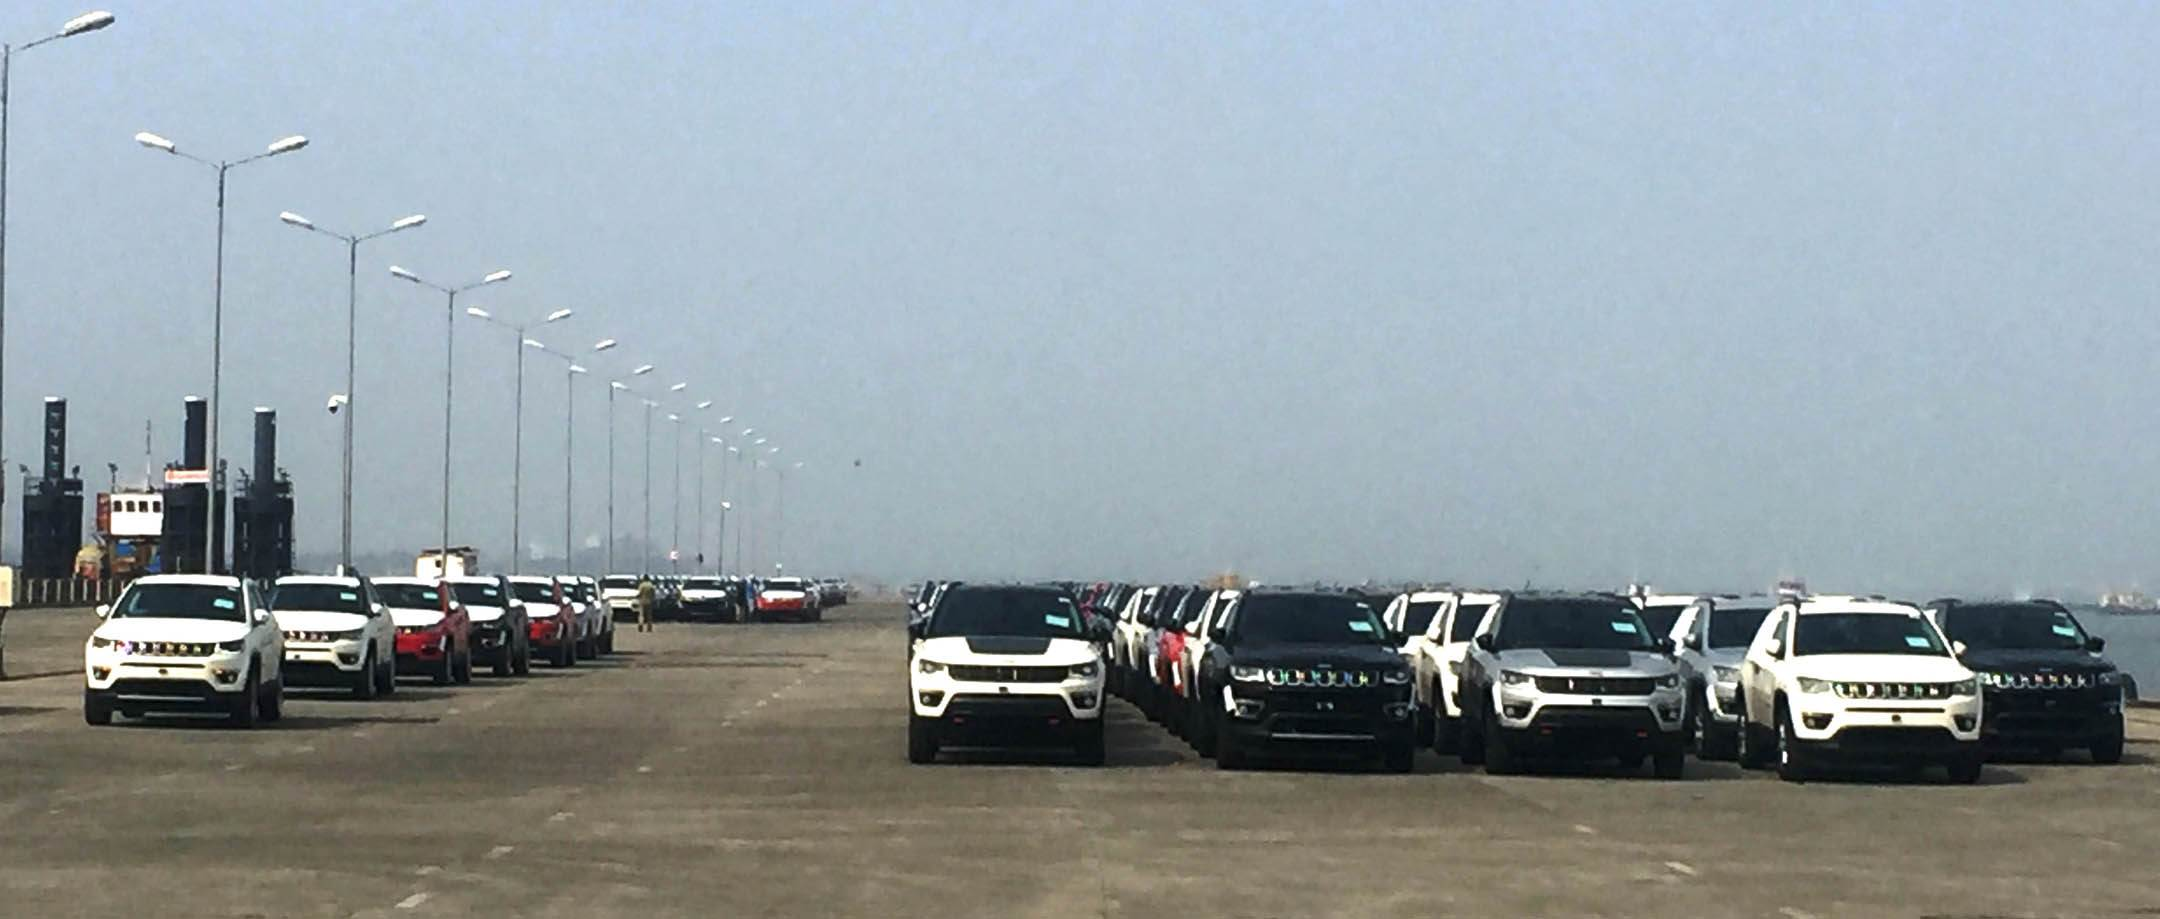 first-batch-of-the-jeep-compass-at-bombay-port-trust-ready-to-be-shipped-to-japan-and-australia-2